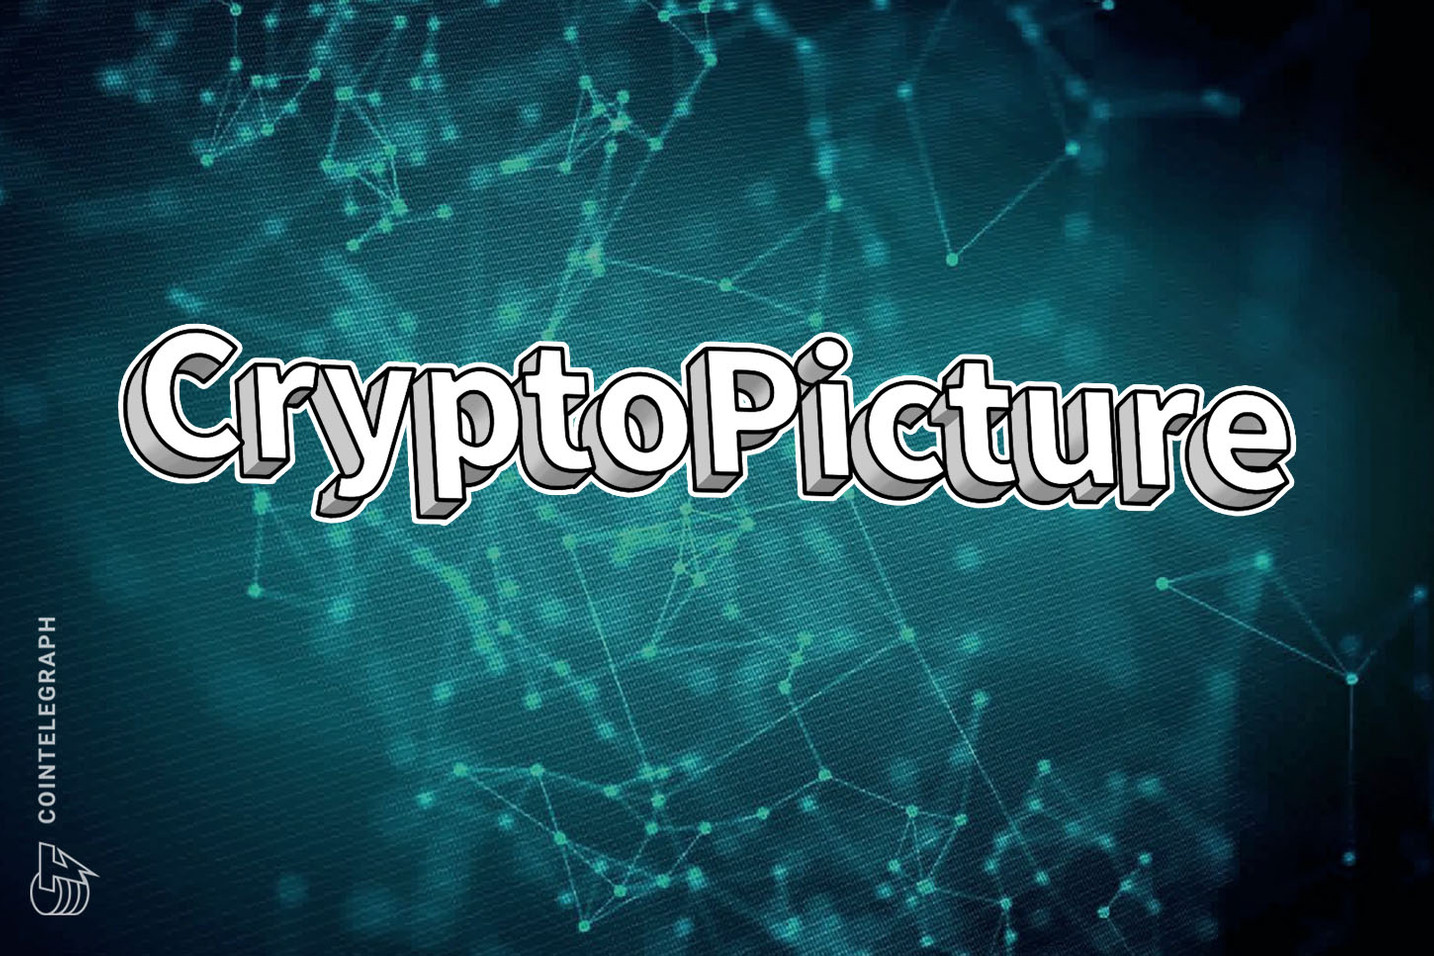 CryptoPicture, a Tokenized Advertising Investment Platform, to Be Relaunched With Overhauled Approach